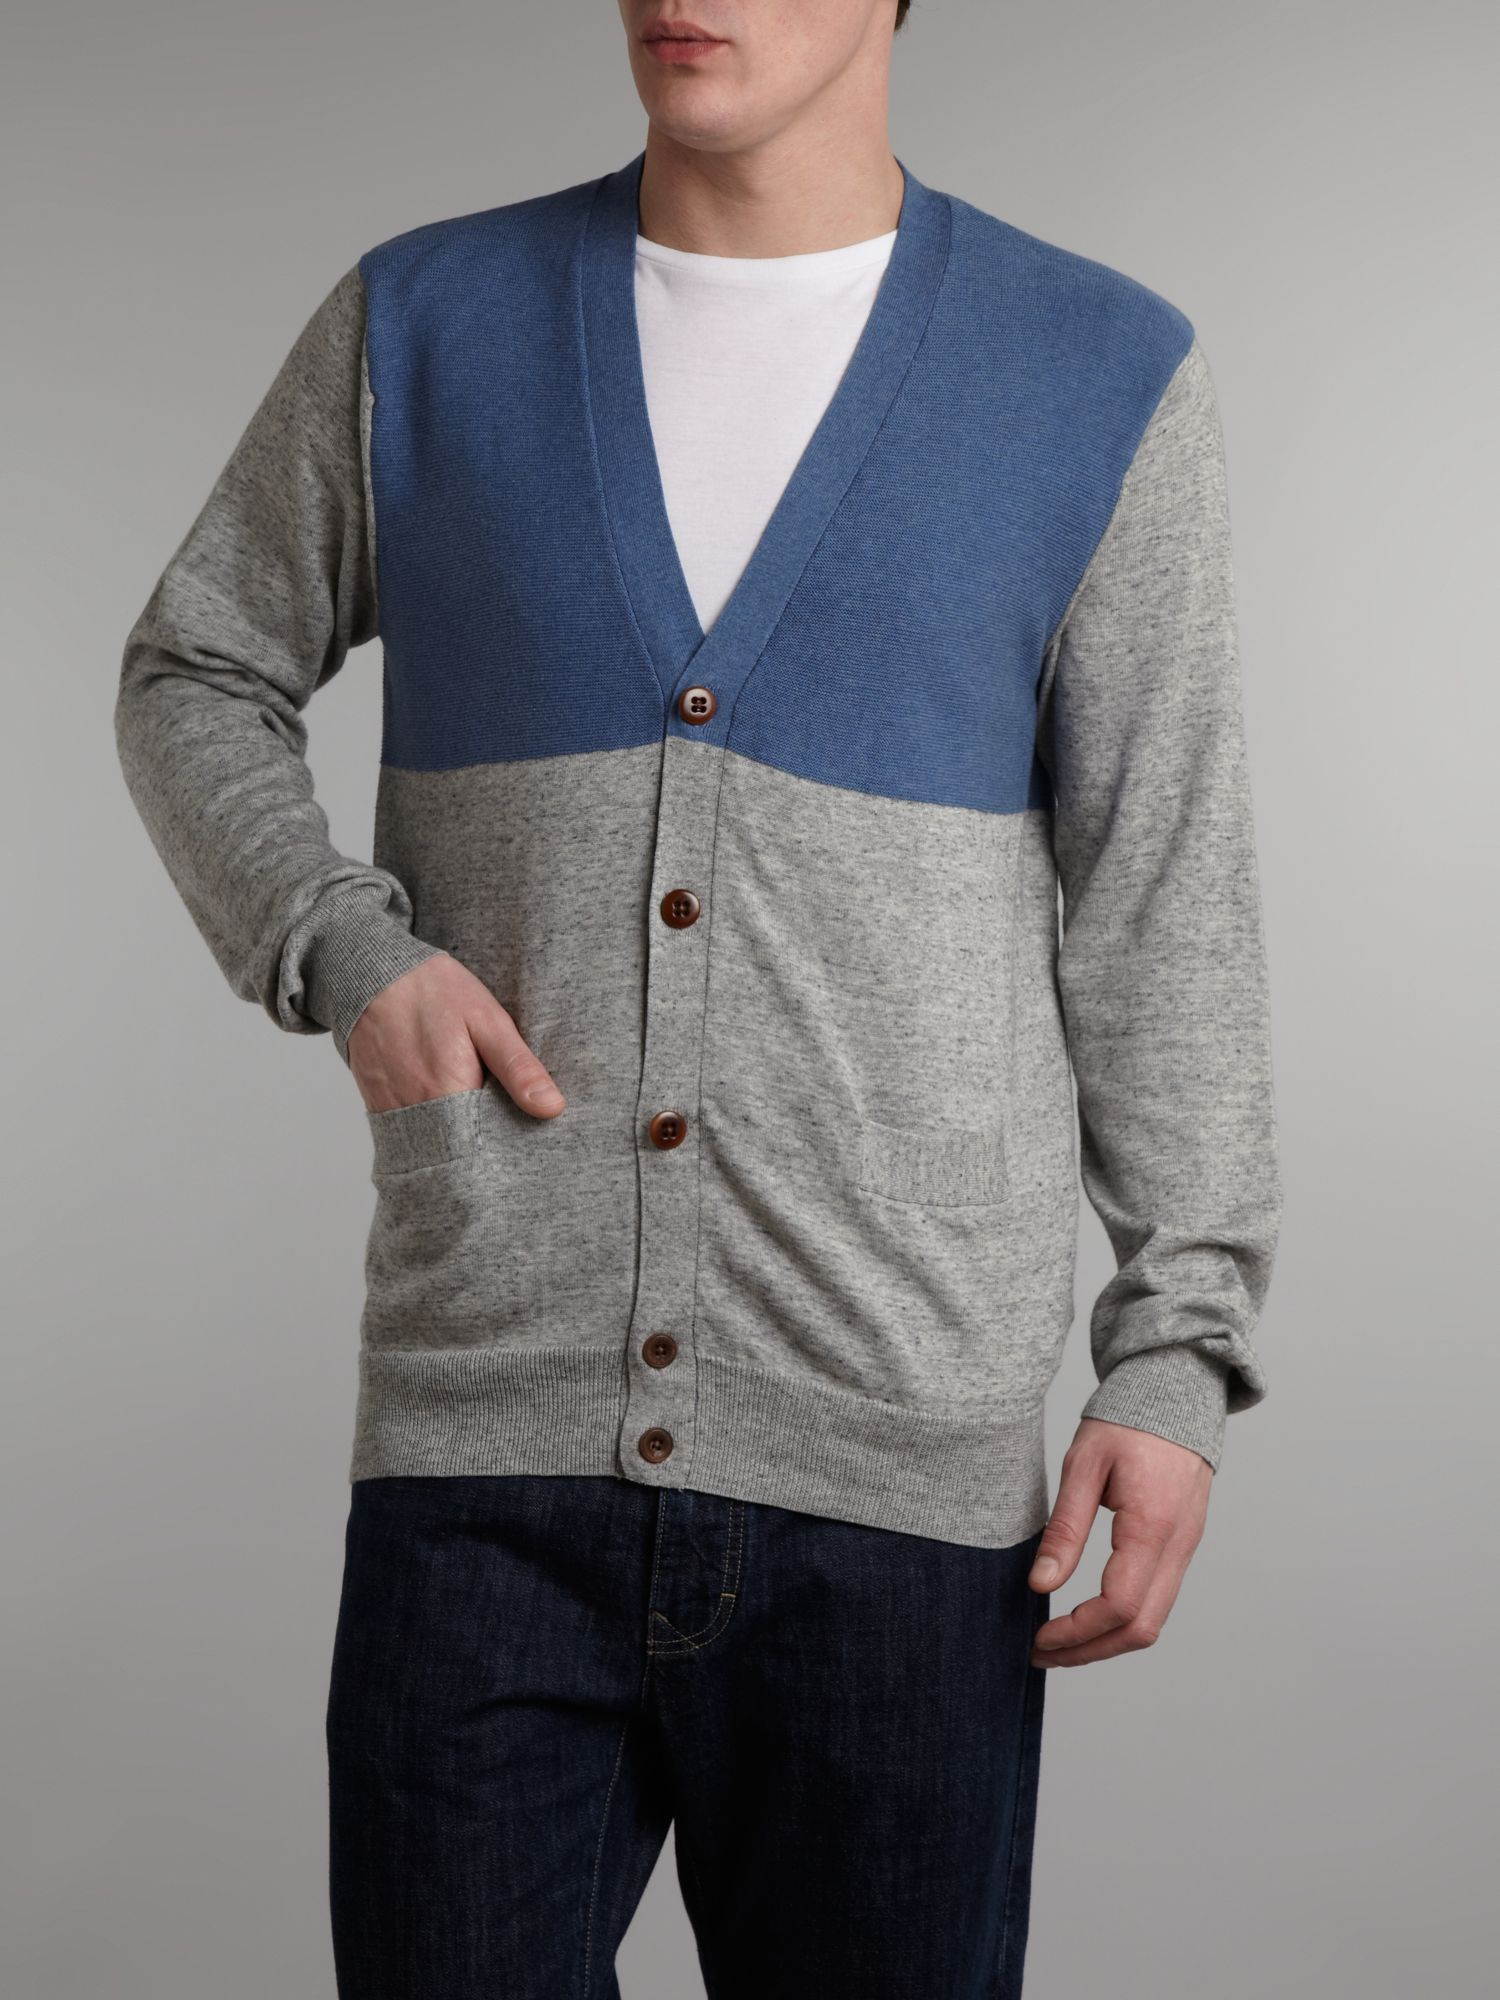 Paul Smith Two Tone Cardigan in Grey Marl (Blue) for Men